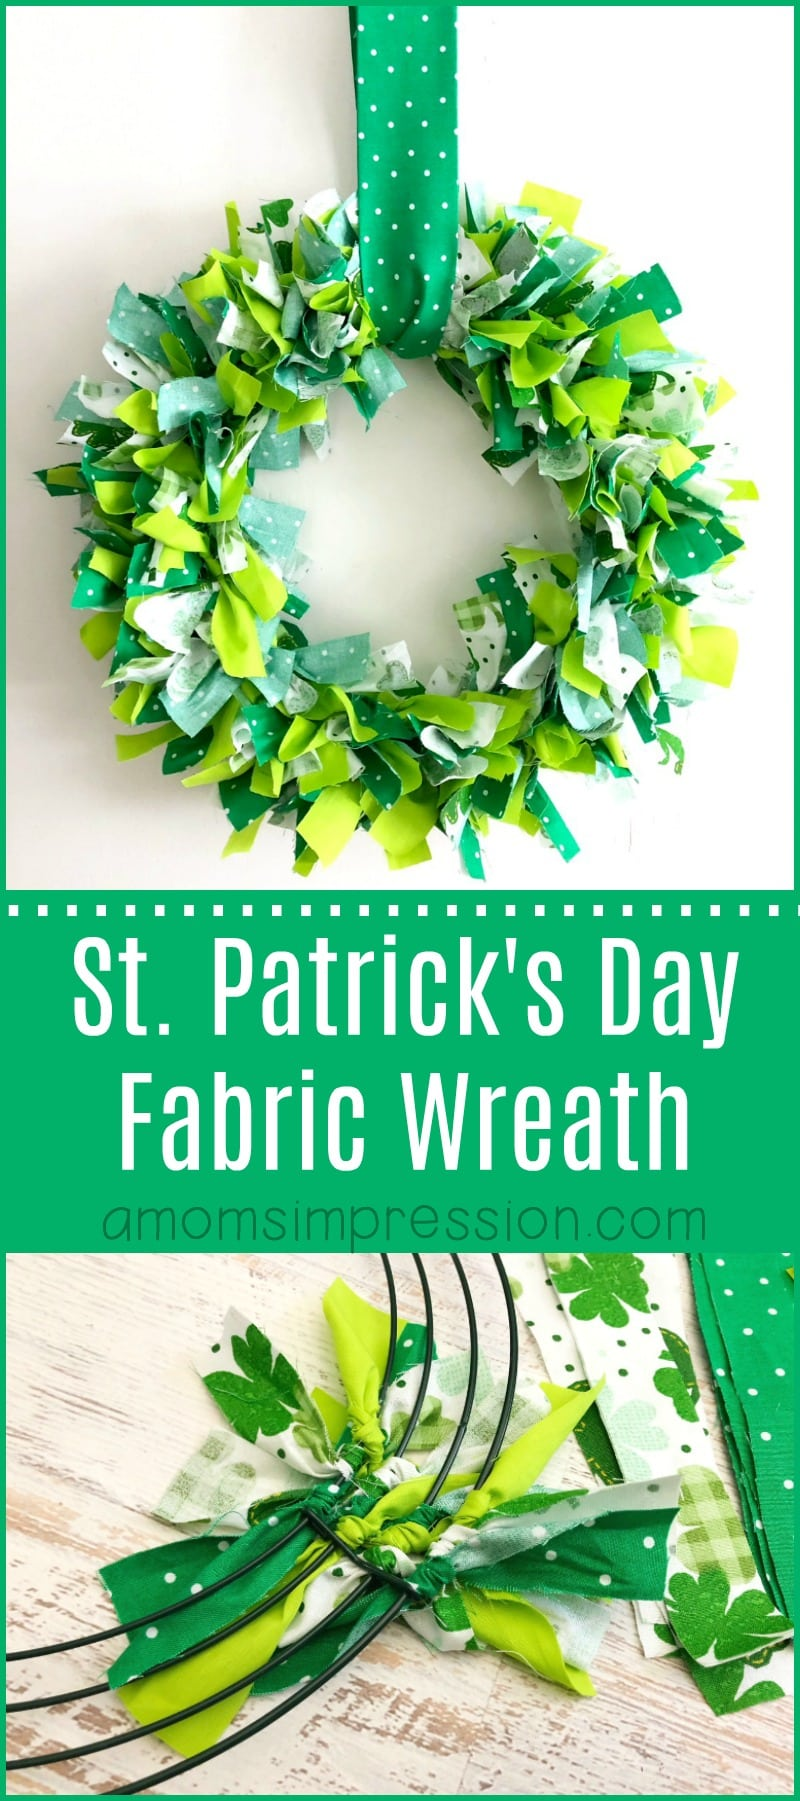 This fabric shamrock wreath is easy to put together and is the perfect addition to your St. Patty's decor!